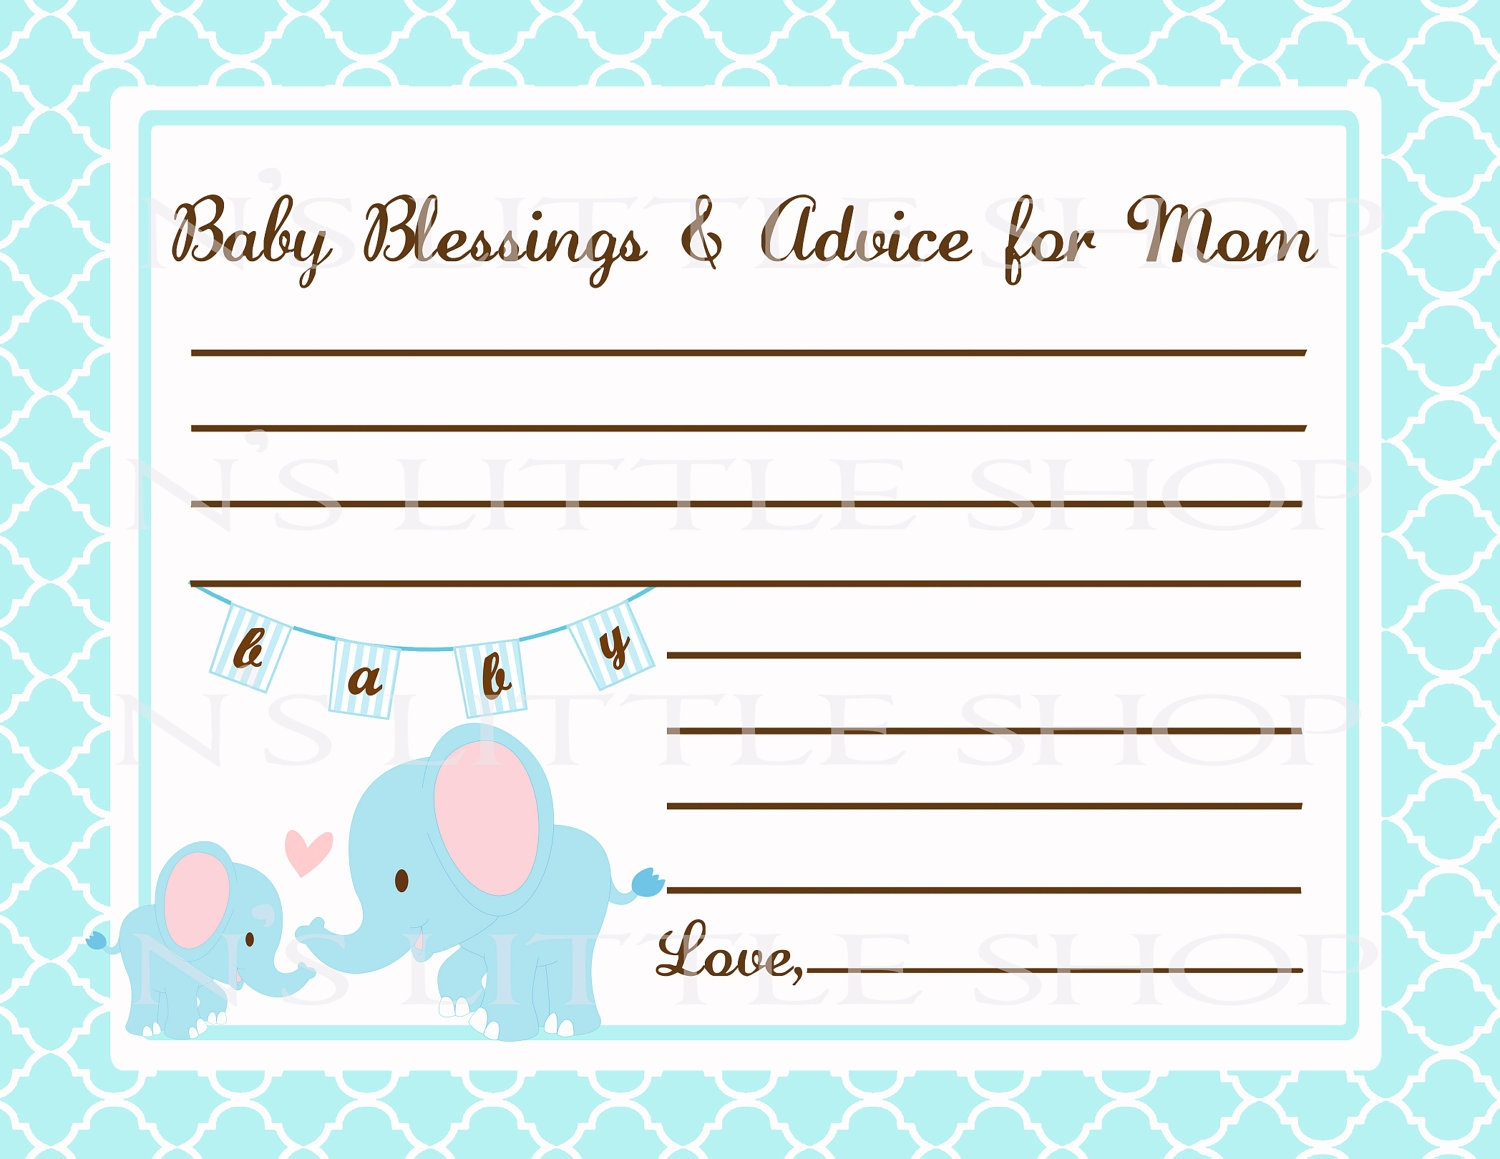 Free Printable Baby Shower Advice Cards - Printable Cards - Free Printable Baby Cards